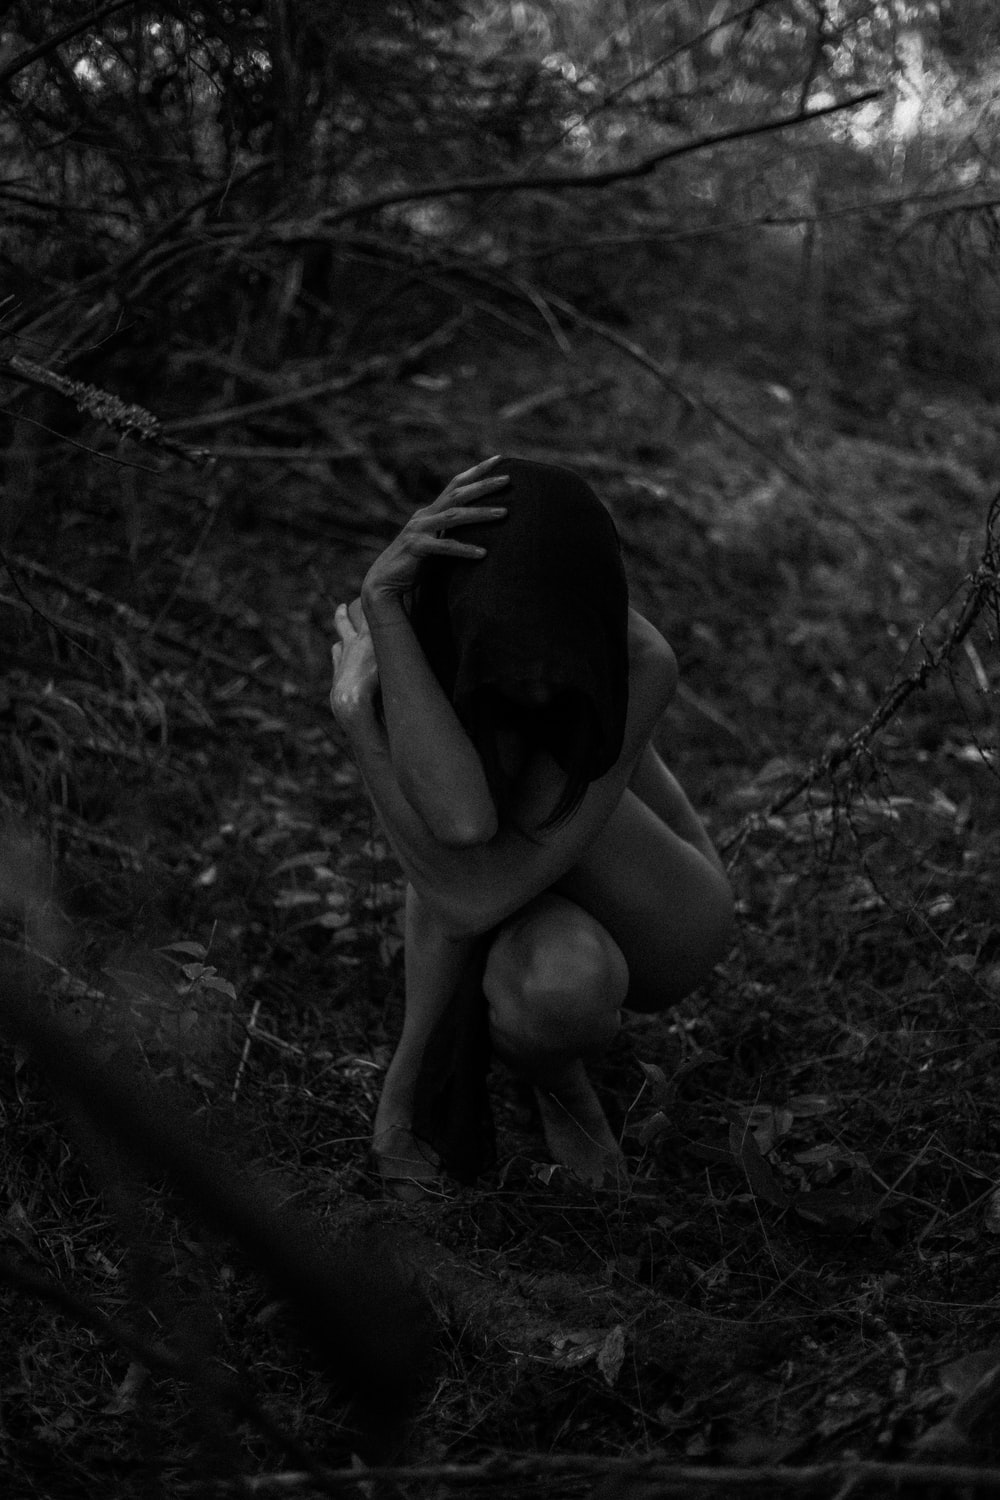 grayscale photography of woman naked outdoor